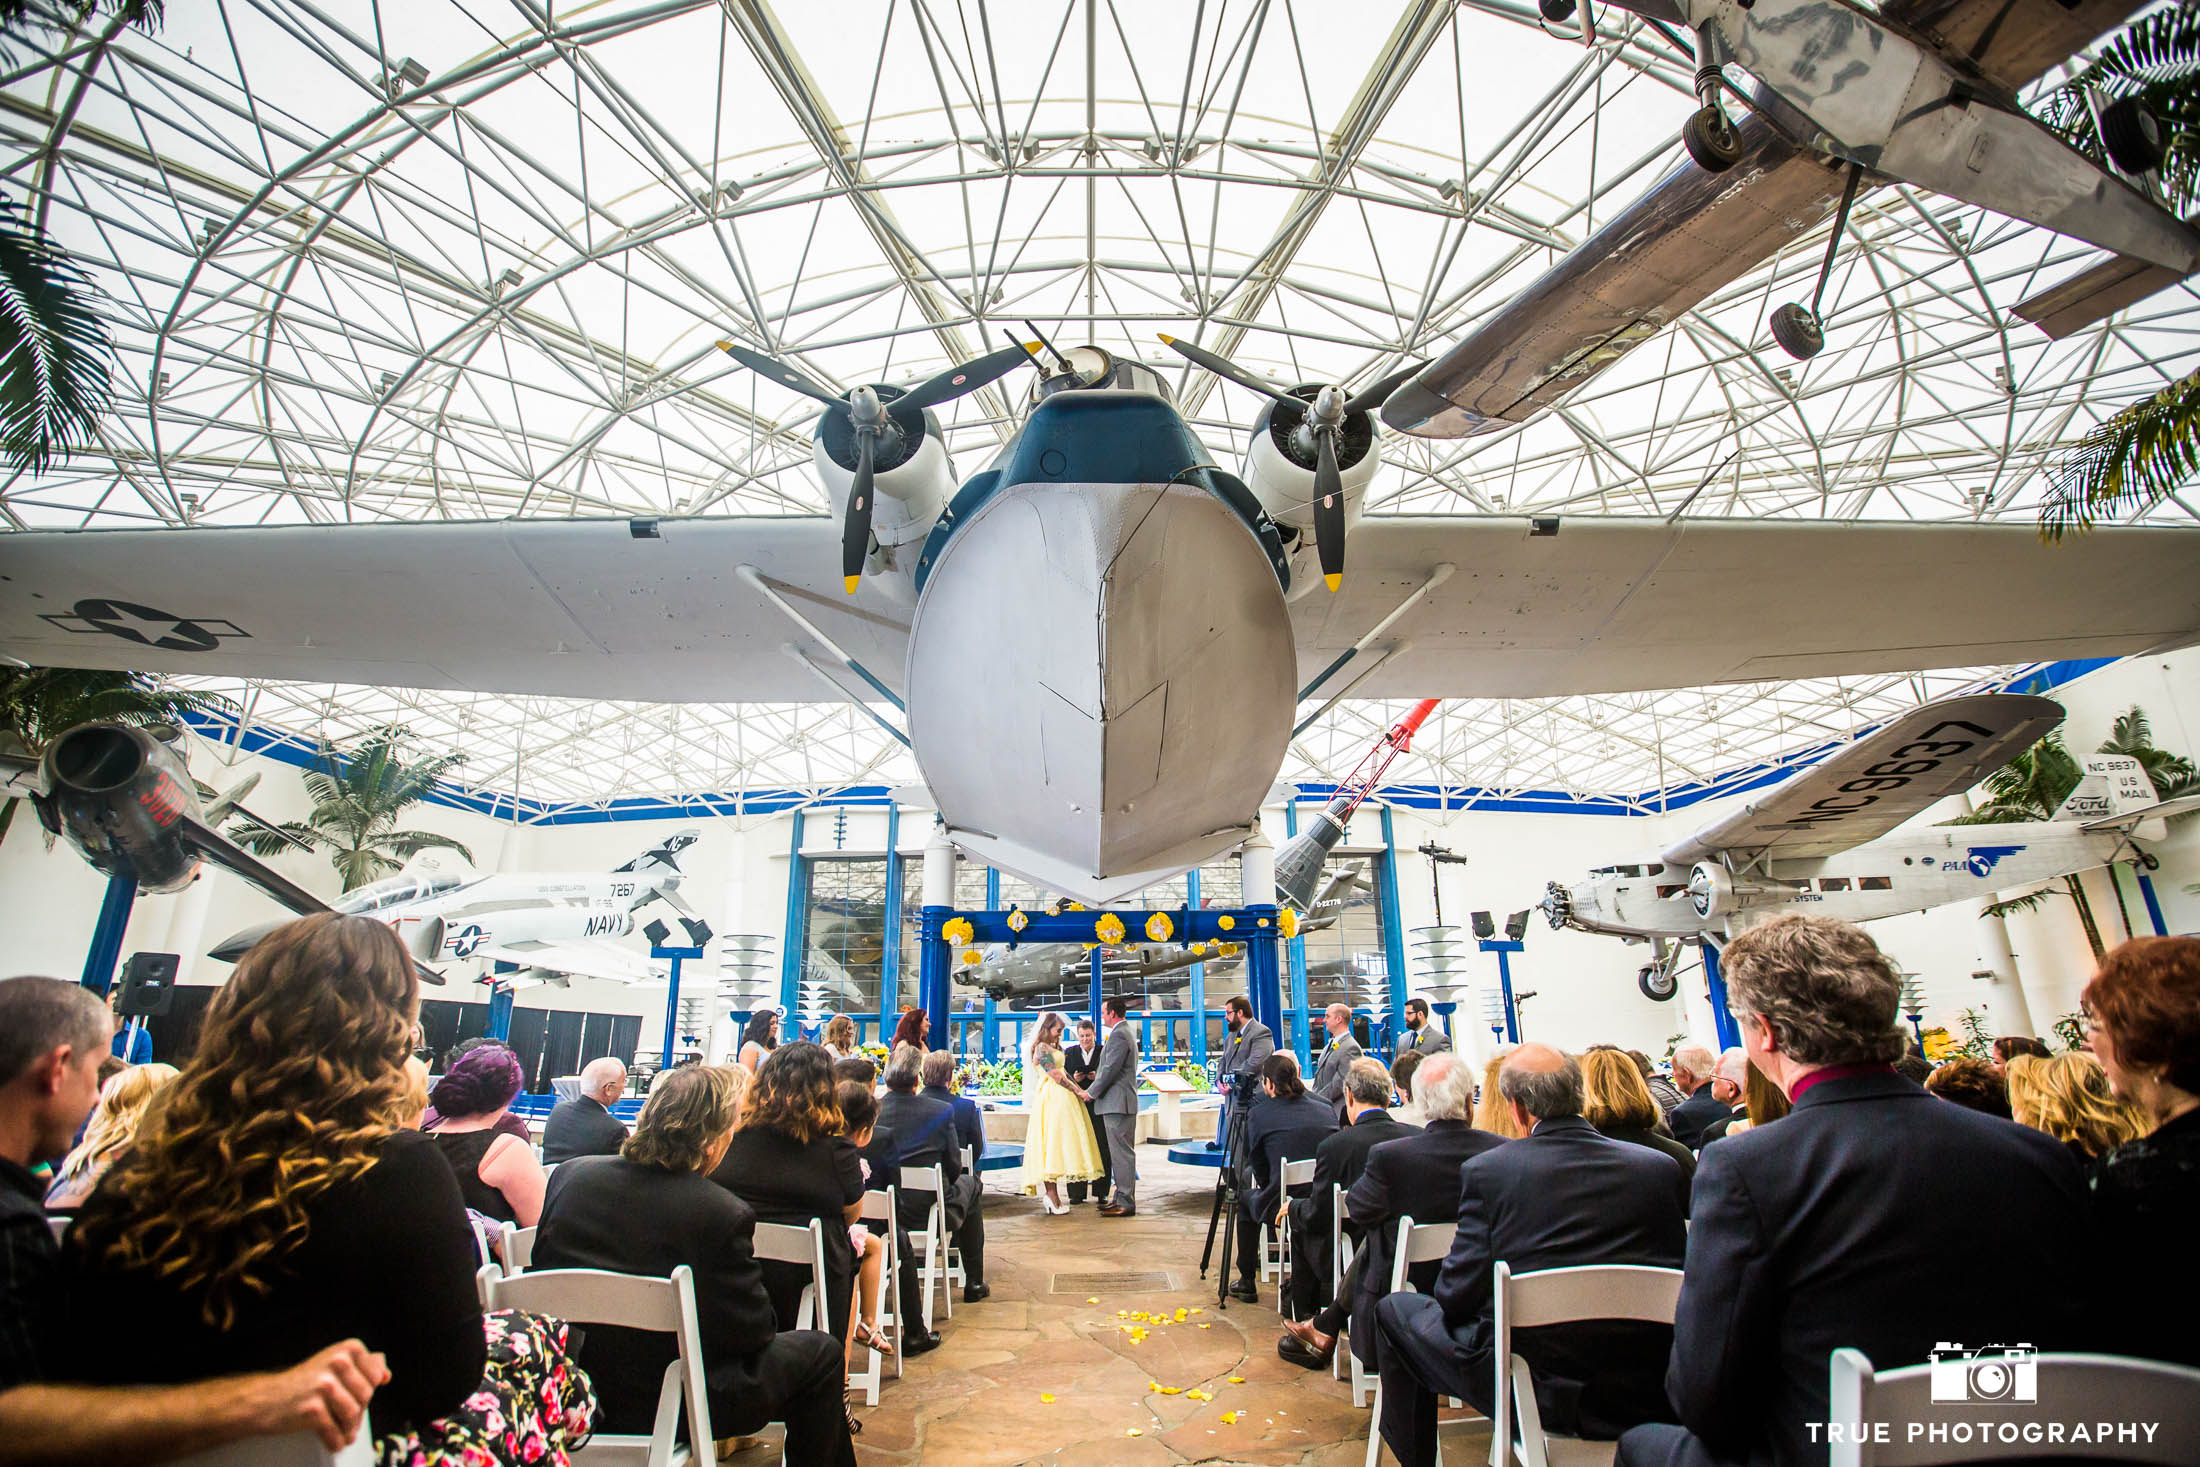 Bride and Groom hold hands under big airplane during Star Wars themed wedding ceremony at museum